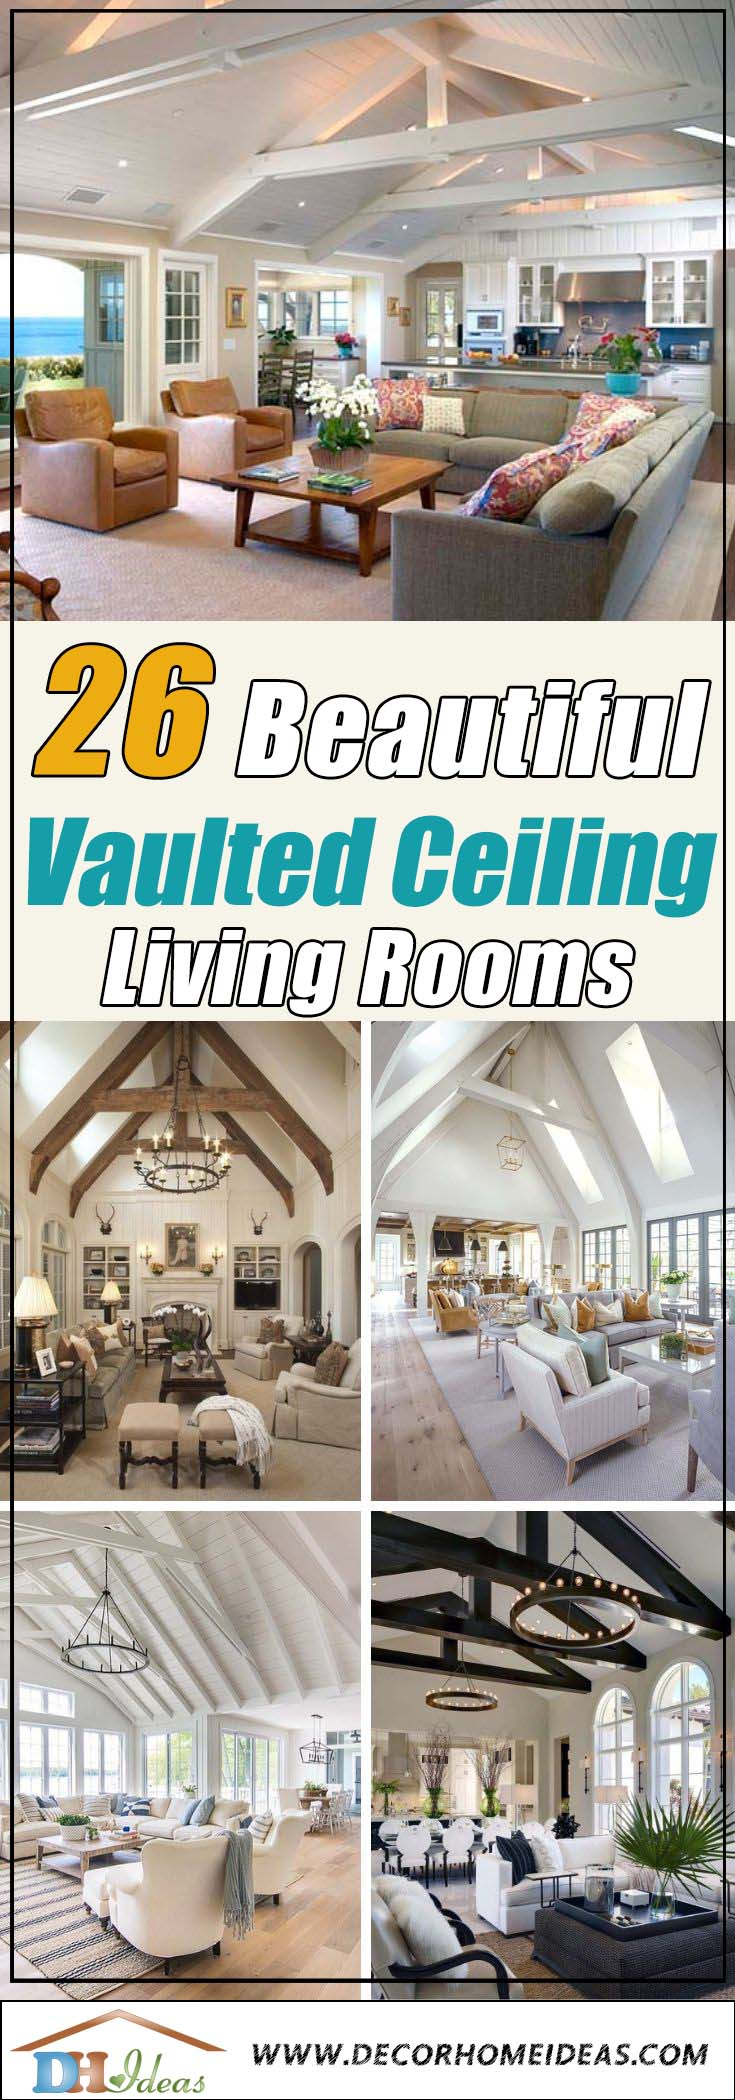 Best Vaulted Ceiling Living Rooms - Ideas and Designs #ceiling #livingroom #vaulted #decorhomeideas